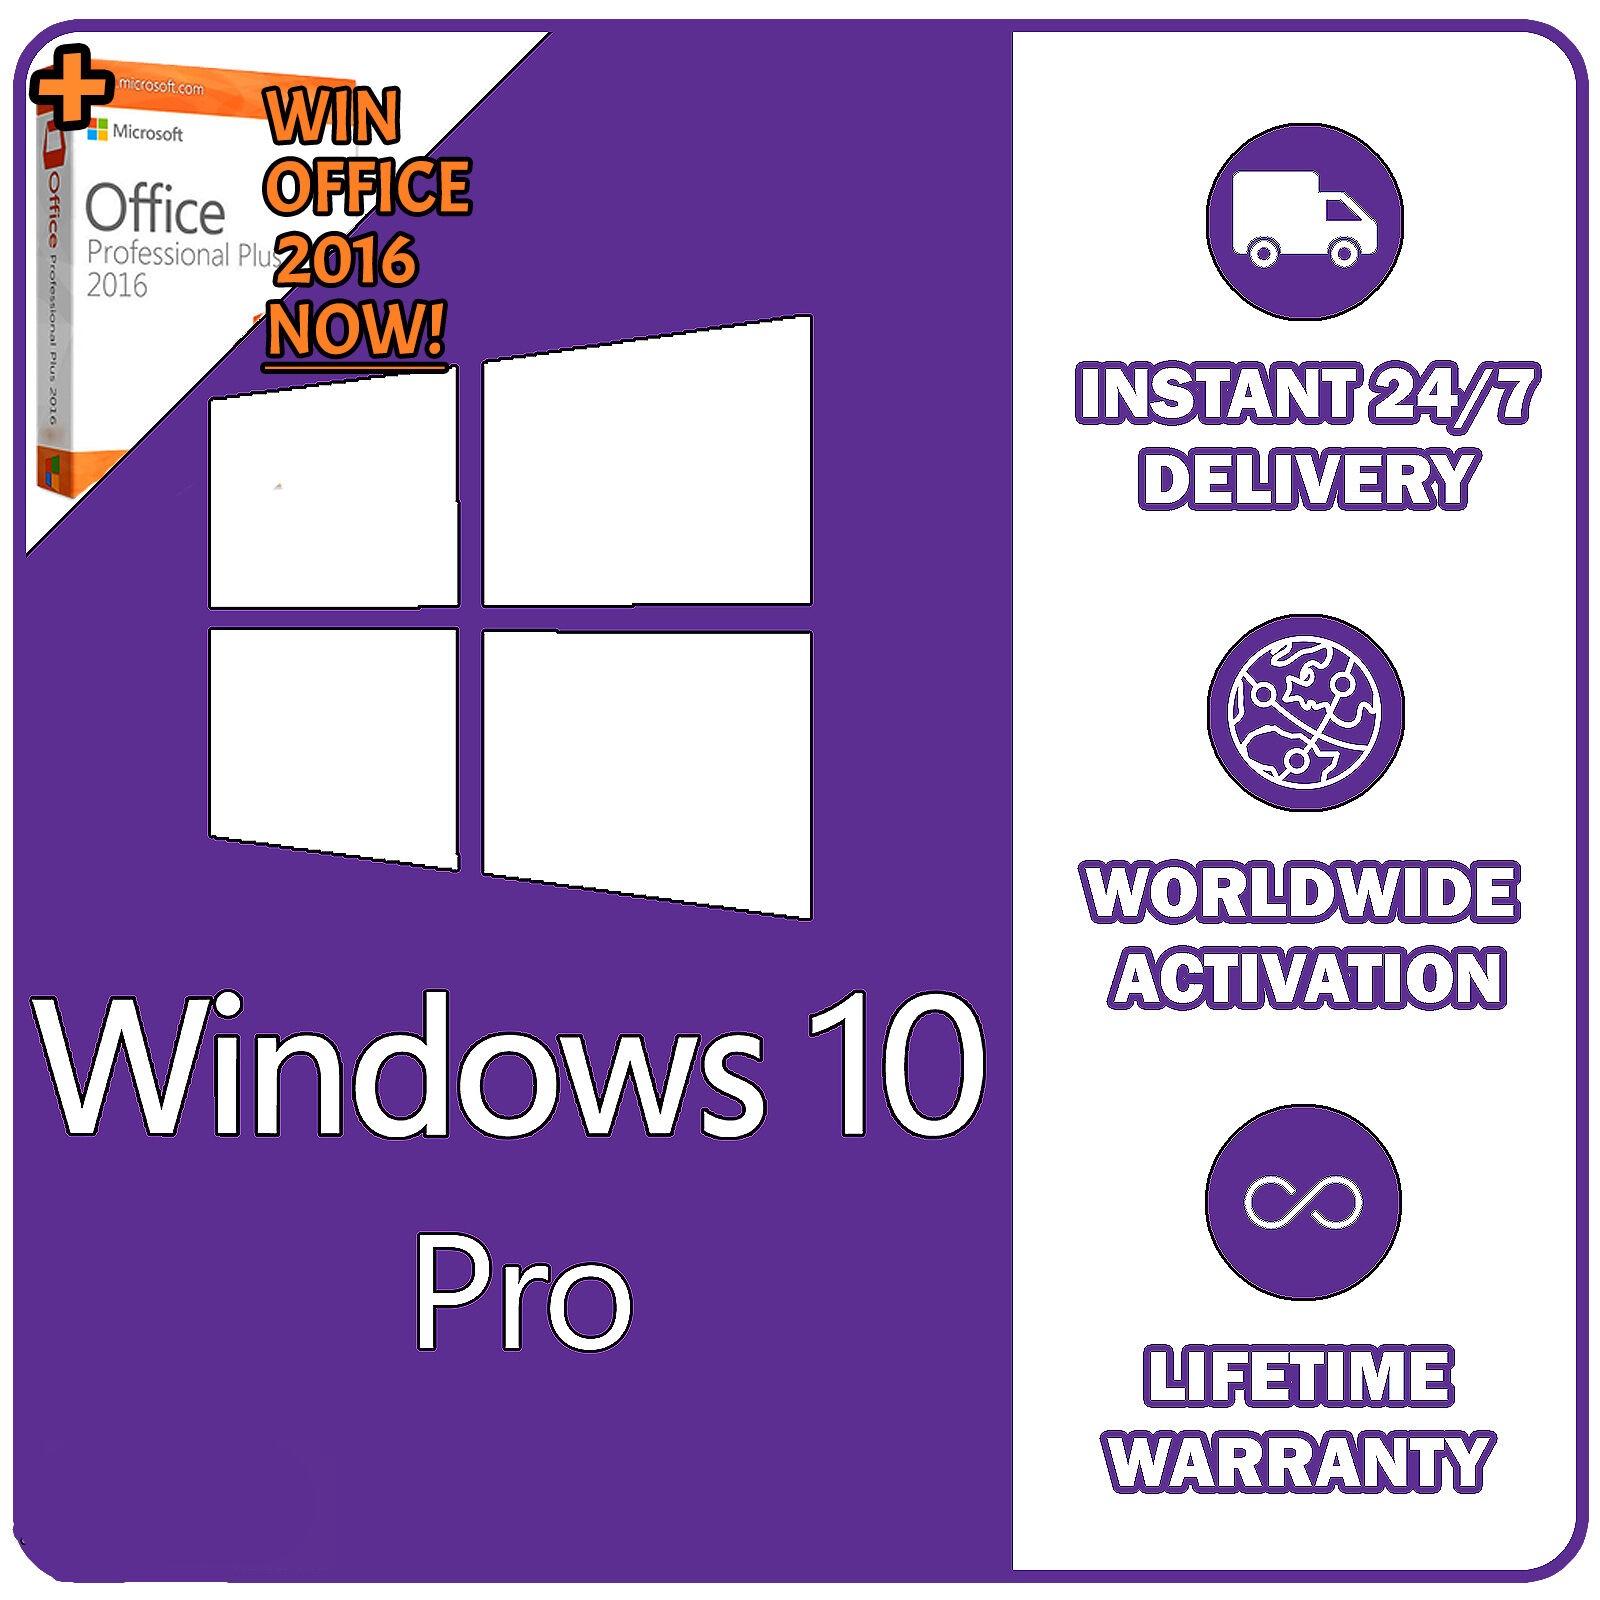 Windows 10 Pro license key